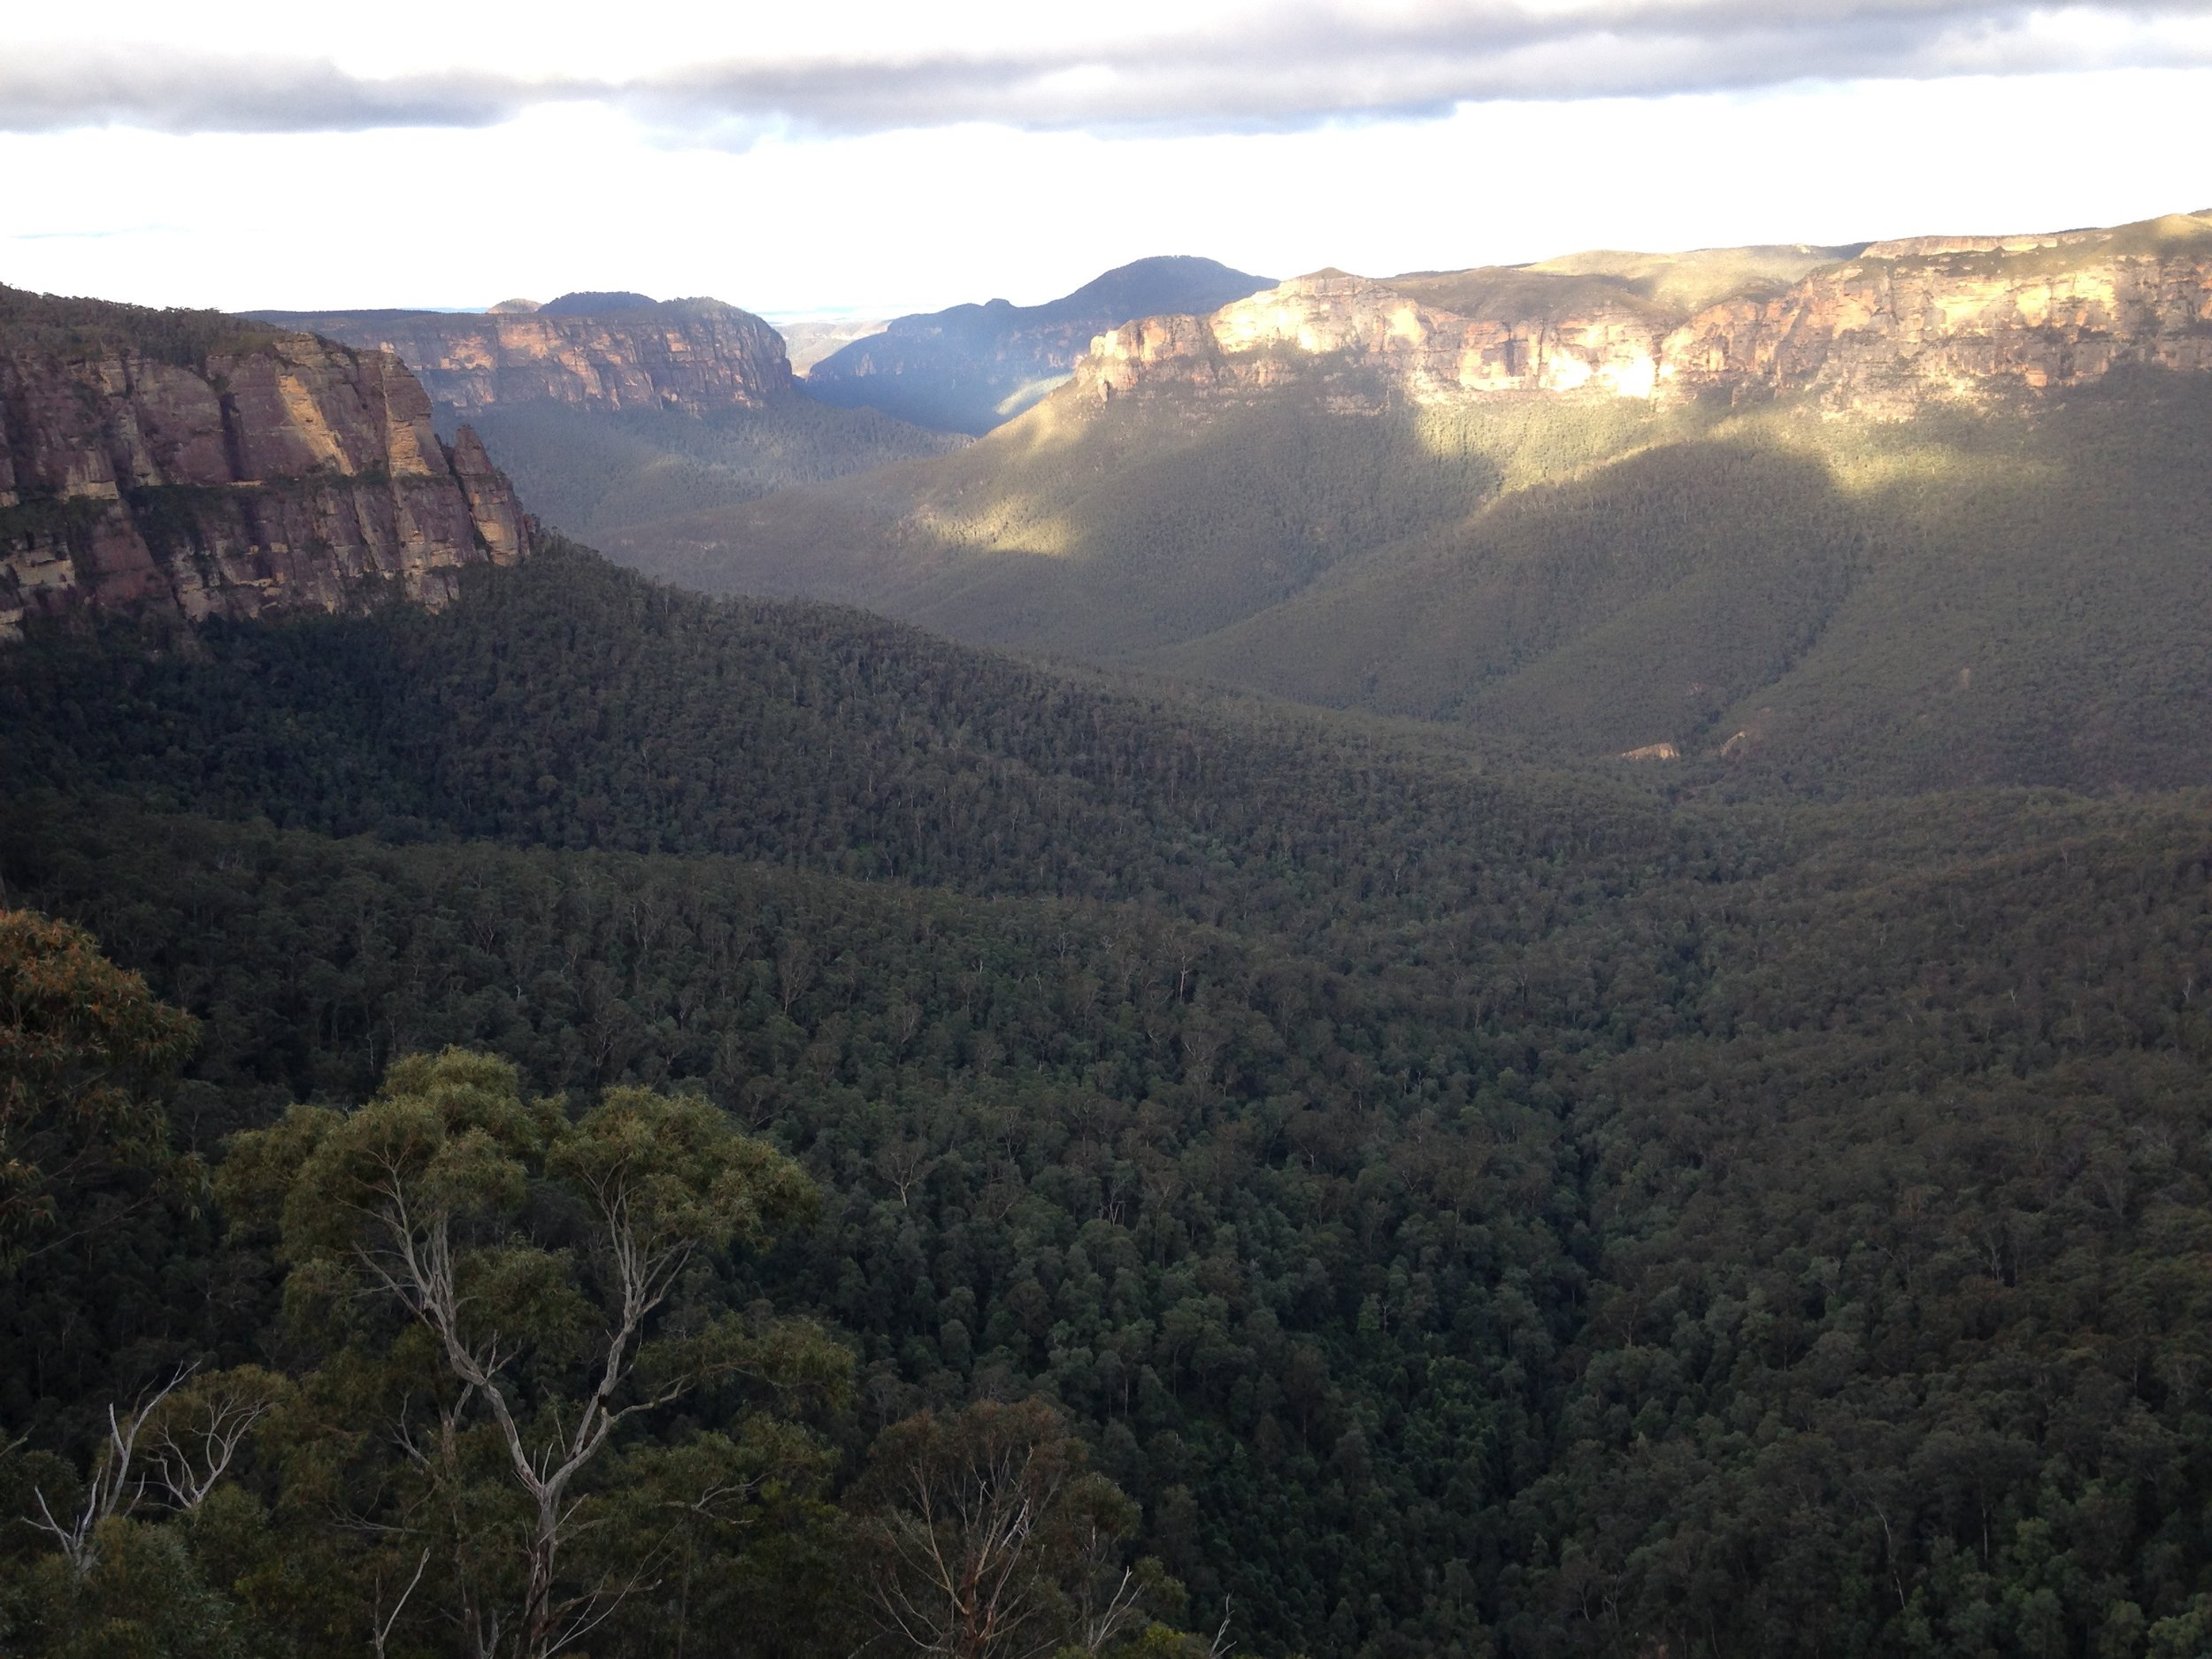 The view from Govett's Leap, Blackheath, not far from Pinerolo.  The Blue Mountains - an inspiration in themselves!